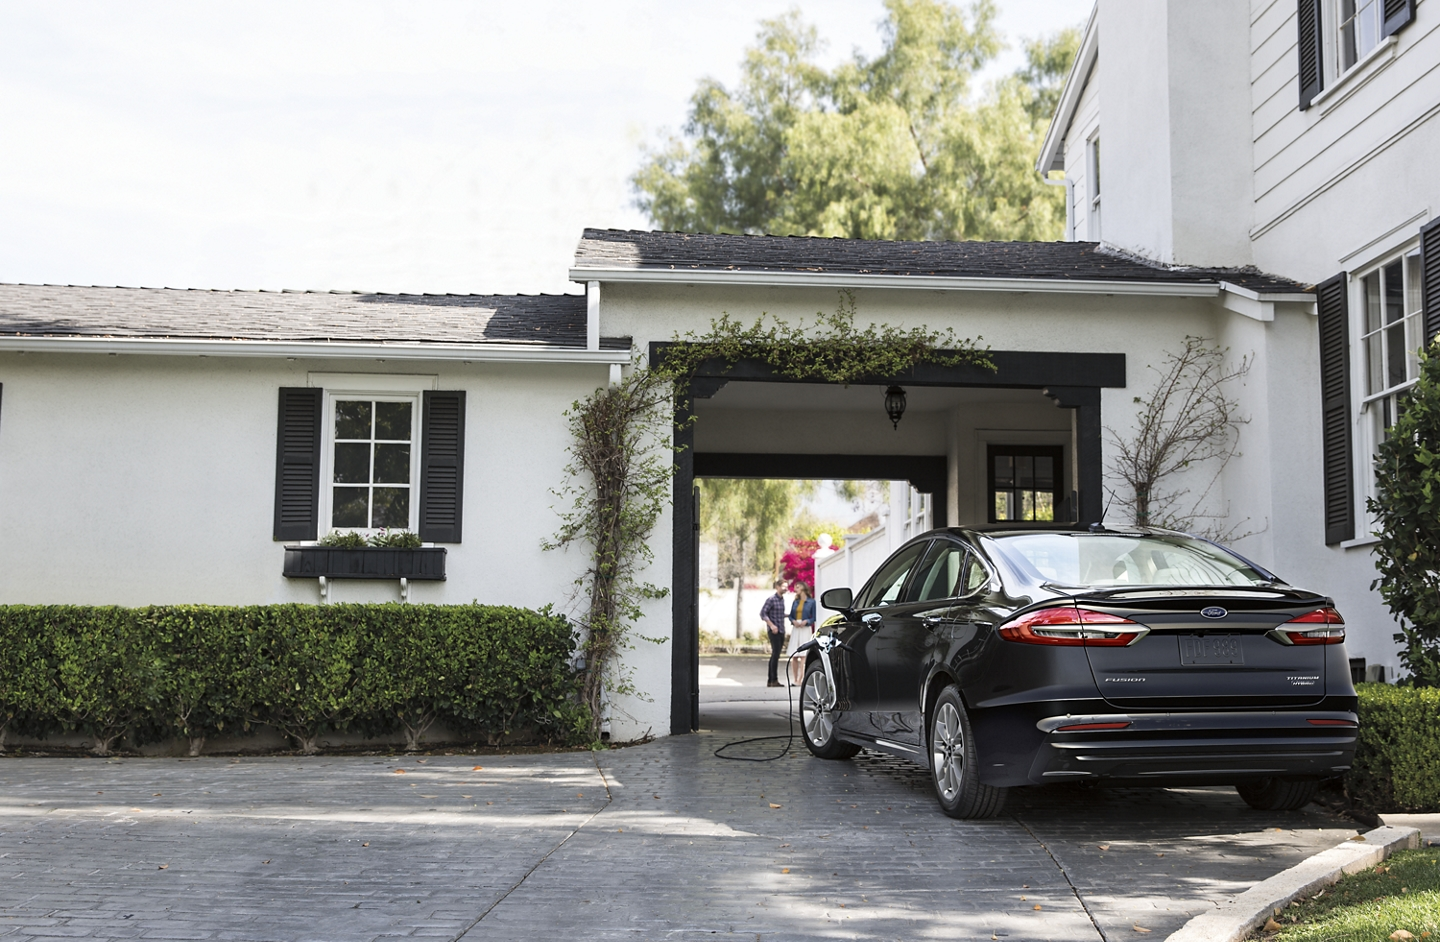 2020 Ford Fusion Titanium Plug in Hybrid being charged in a driveway